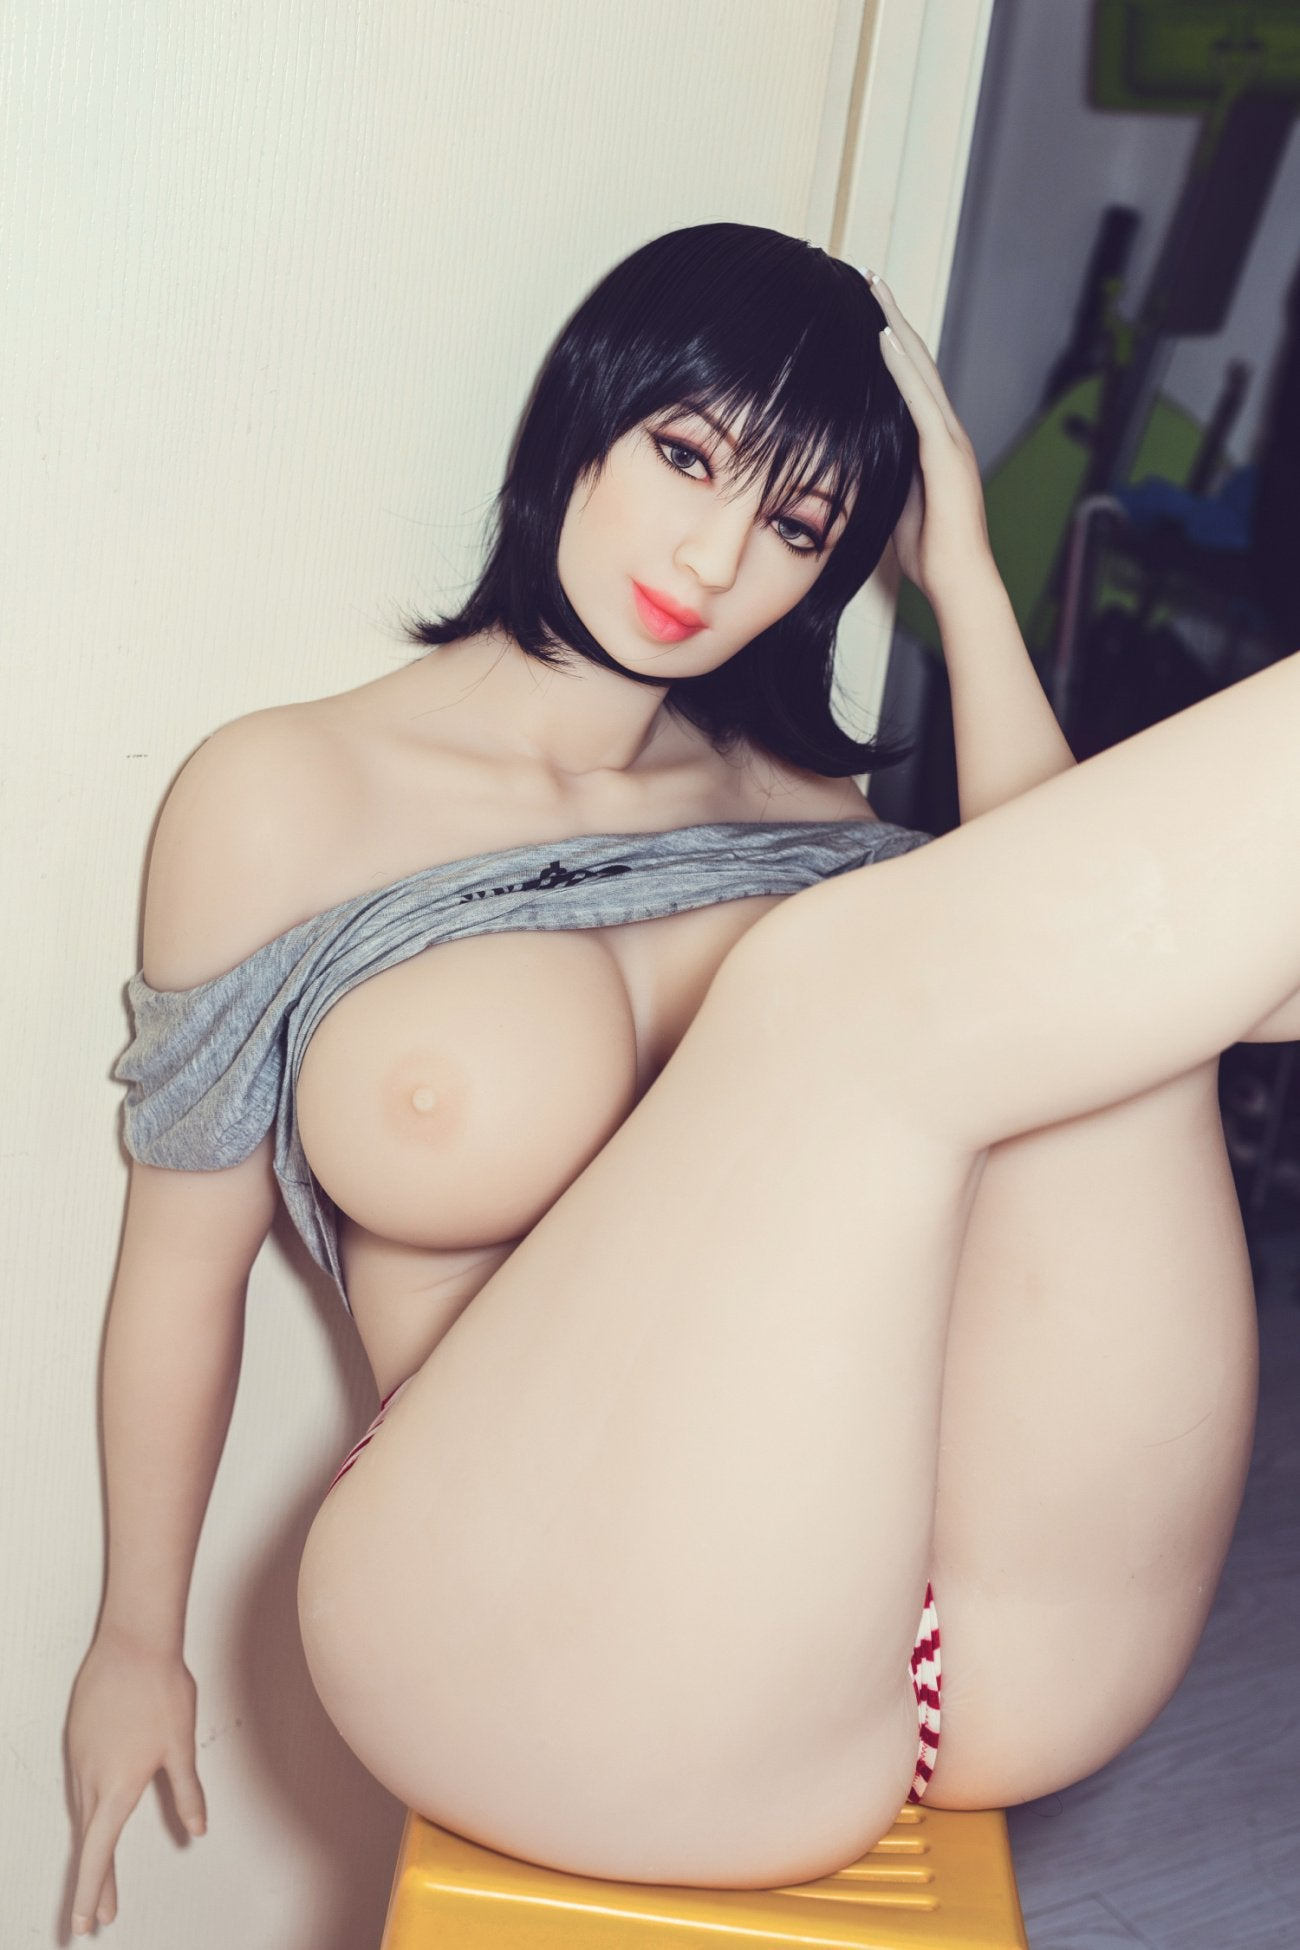 shar 163cm black hair curvy big boobs tpe wm bbw sex doll(5)